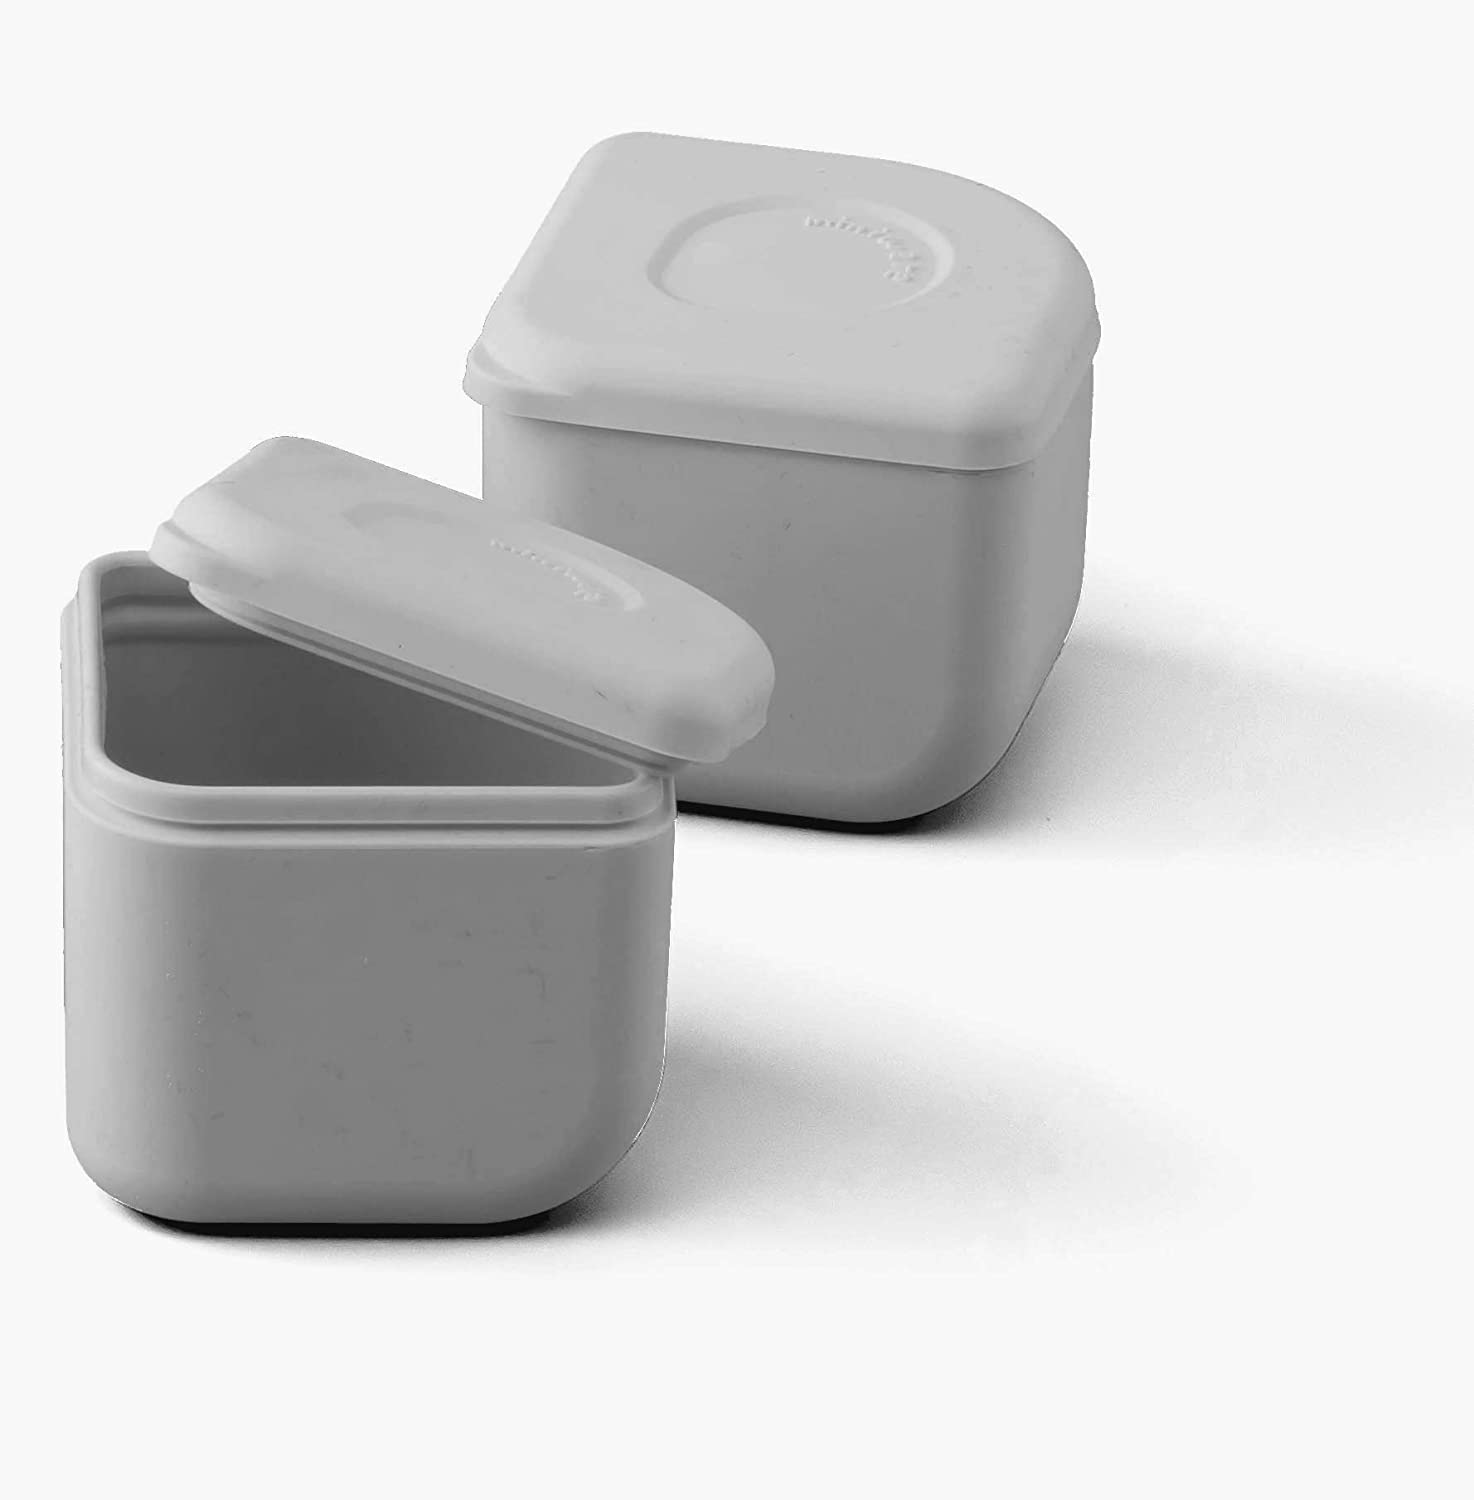 Miniware Silipods Grey 2 Pack | Leakproof Durable Food Grade Silicone Hot and Cold Food Storage for Baby Toddler Kids | Dishwasher, Fridge, and Freezer Safe | for Purees, Soups, Dressings, and More